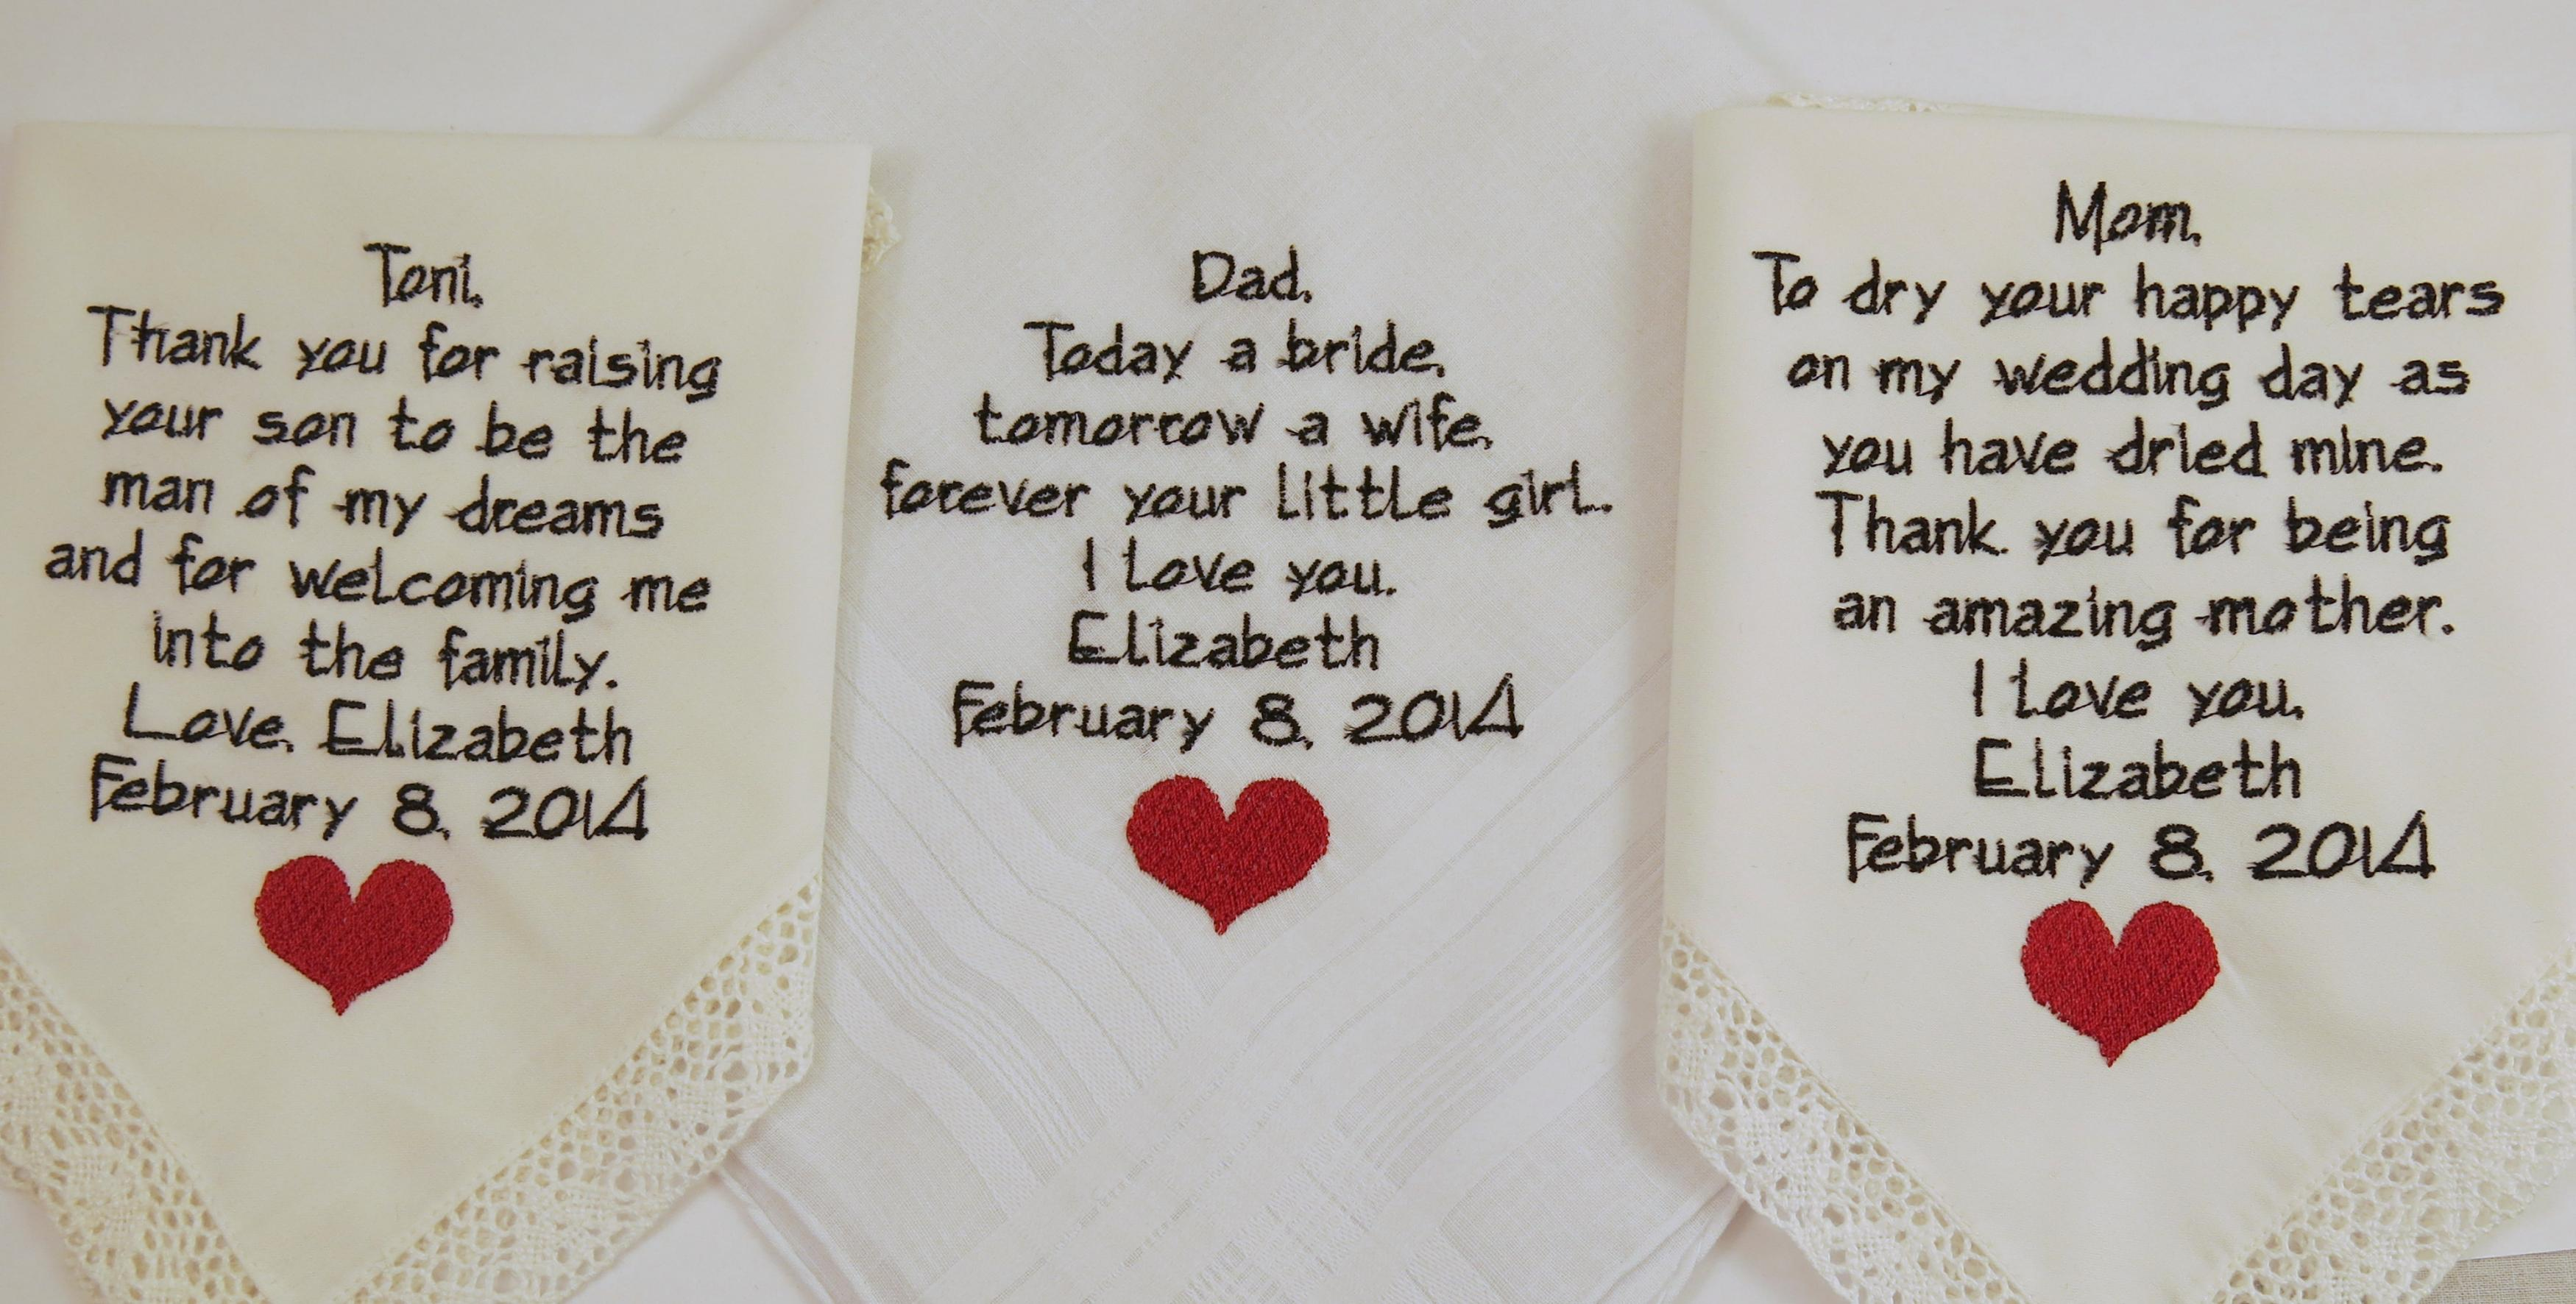 Mother Father Embroidered Wedding Hankerchiefs Gift Poem Heart Gift Mother In Law Marriage 3 Pack on Luulla  sc 1 st  Luulla & Mother Father Embroidered Wedding Hankerchiefs Gift Poem Heart Gift ...